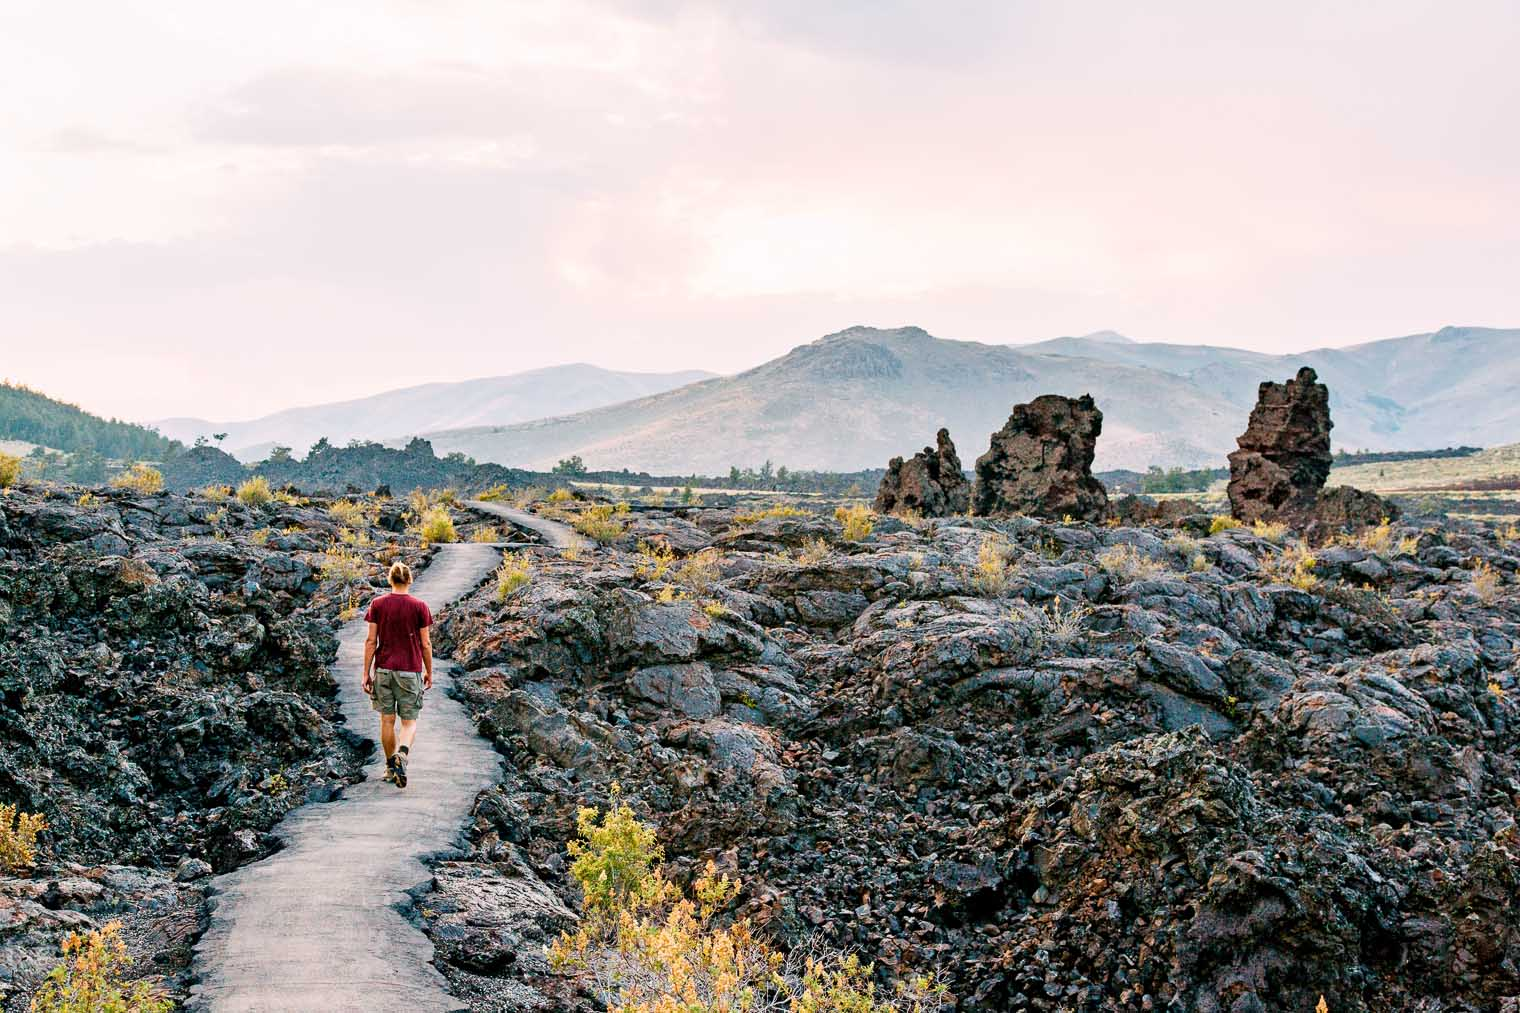 Exploring Craters of the Moon National Monument